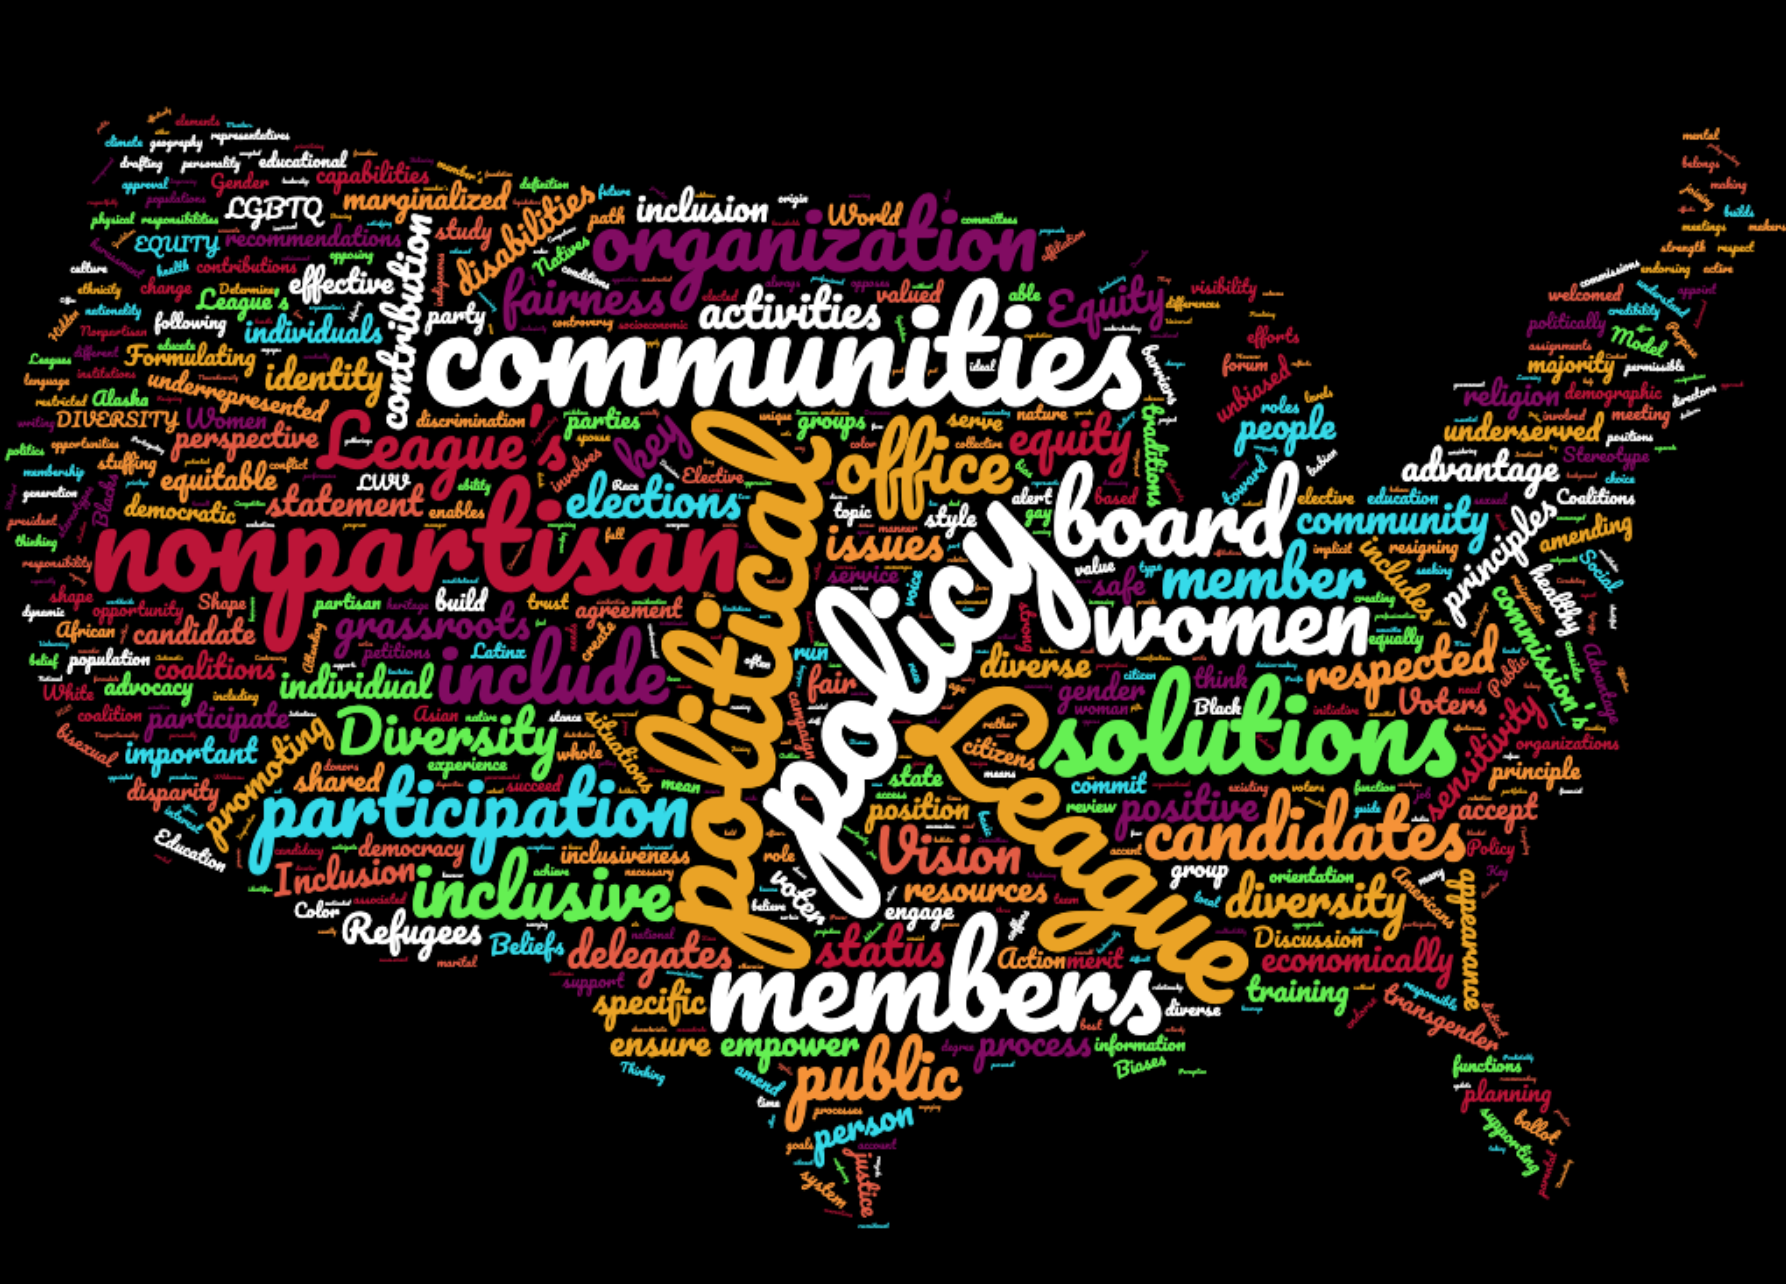 word cloud picture of League vision, beliefs, values, in a map of the US